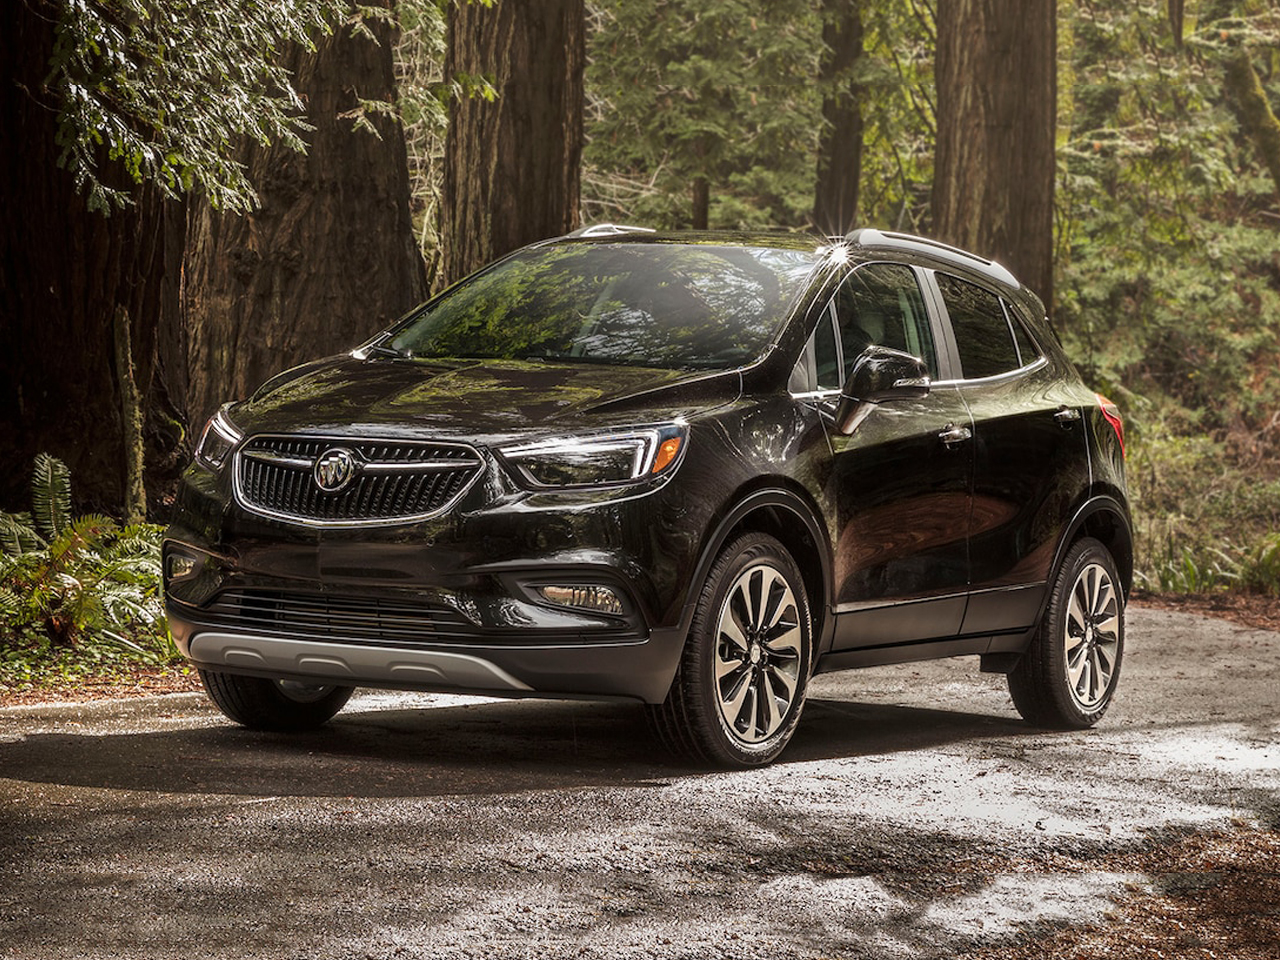 2019 Buick Encore Dealer Inland Empire Moss Bros Buick Gmc